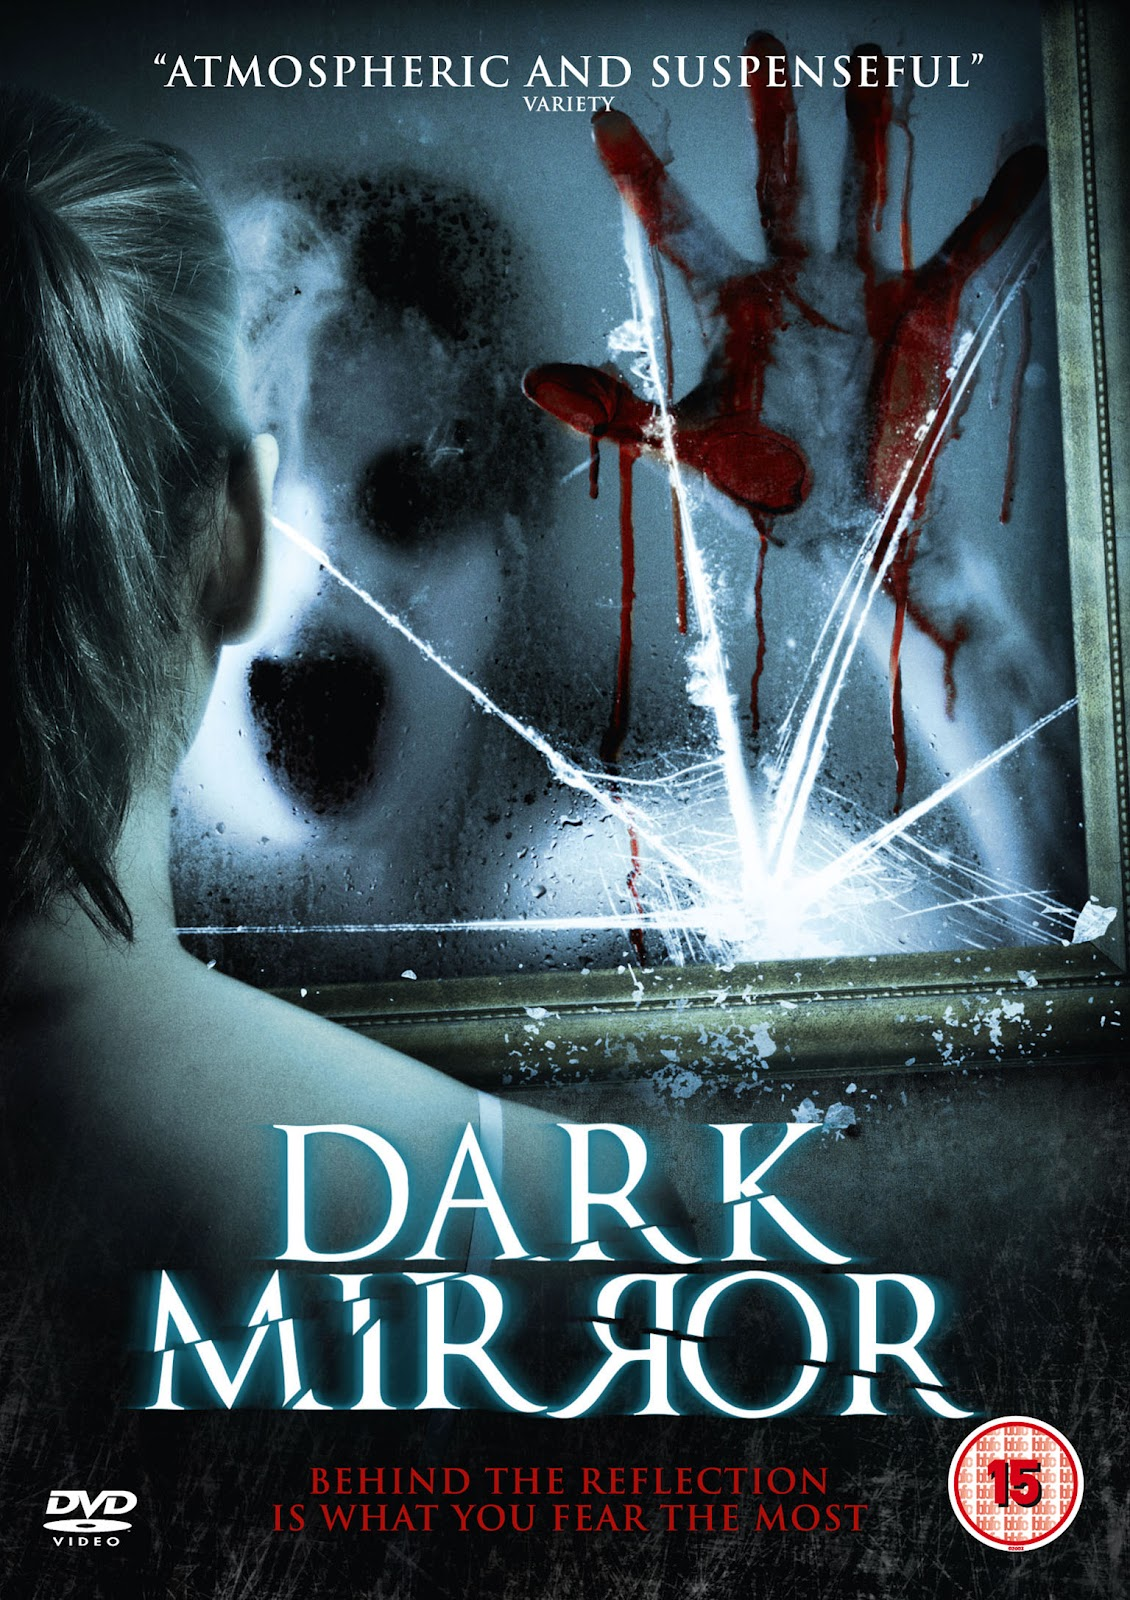 Arrow films looks into the dark mirror review cineventures for Mirror 1 movie